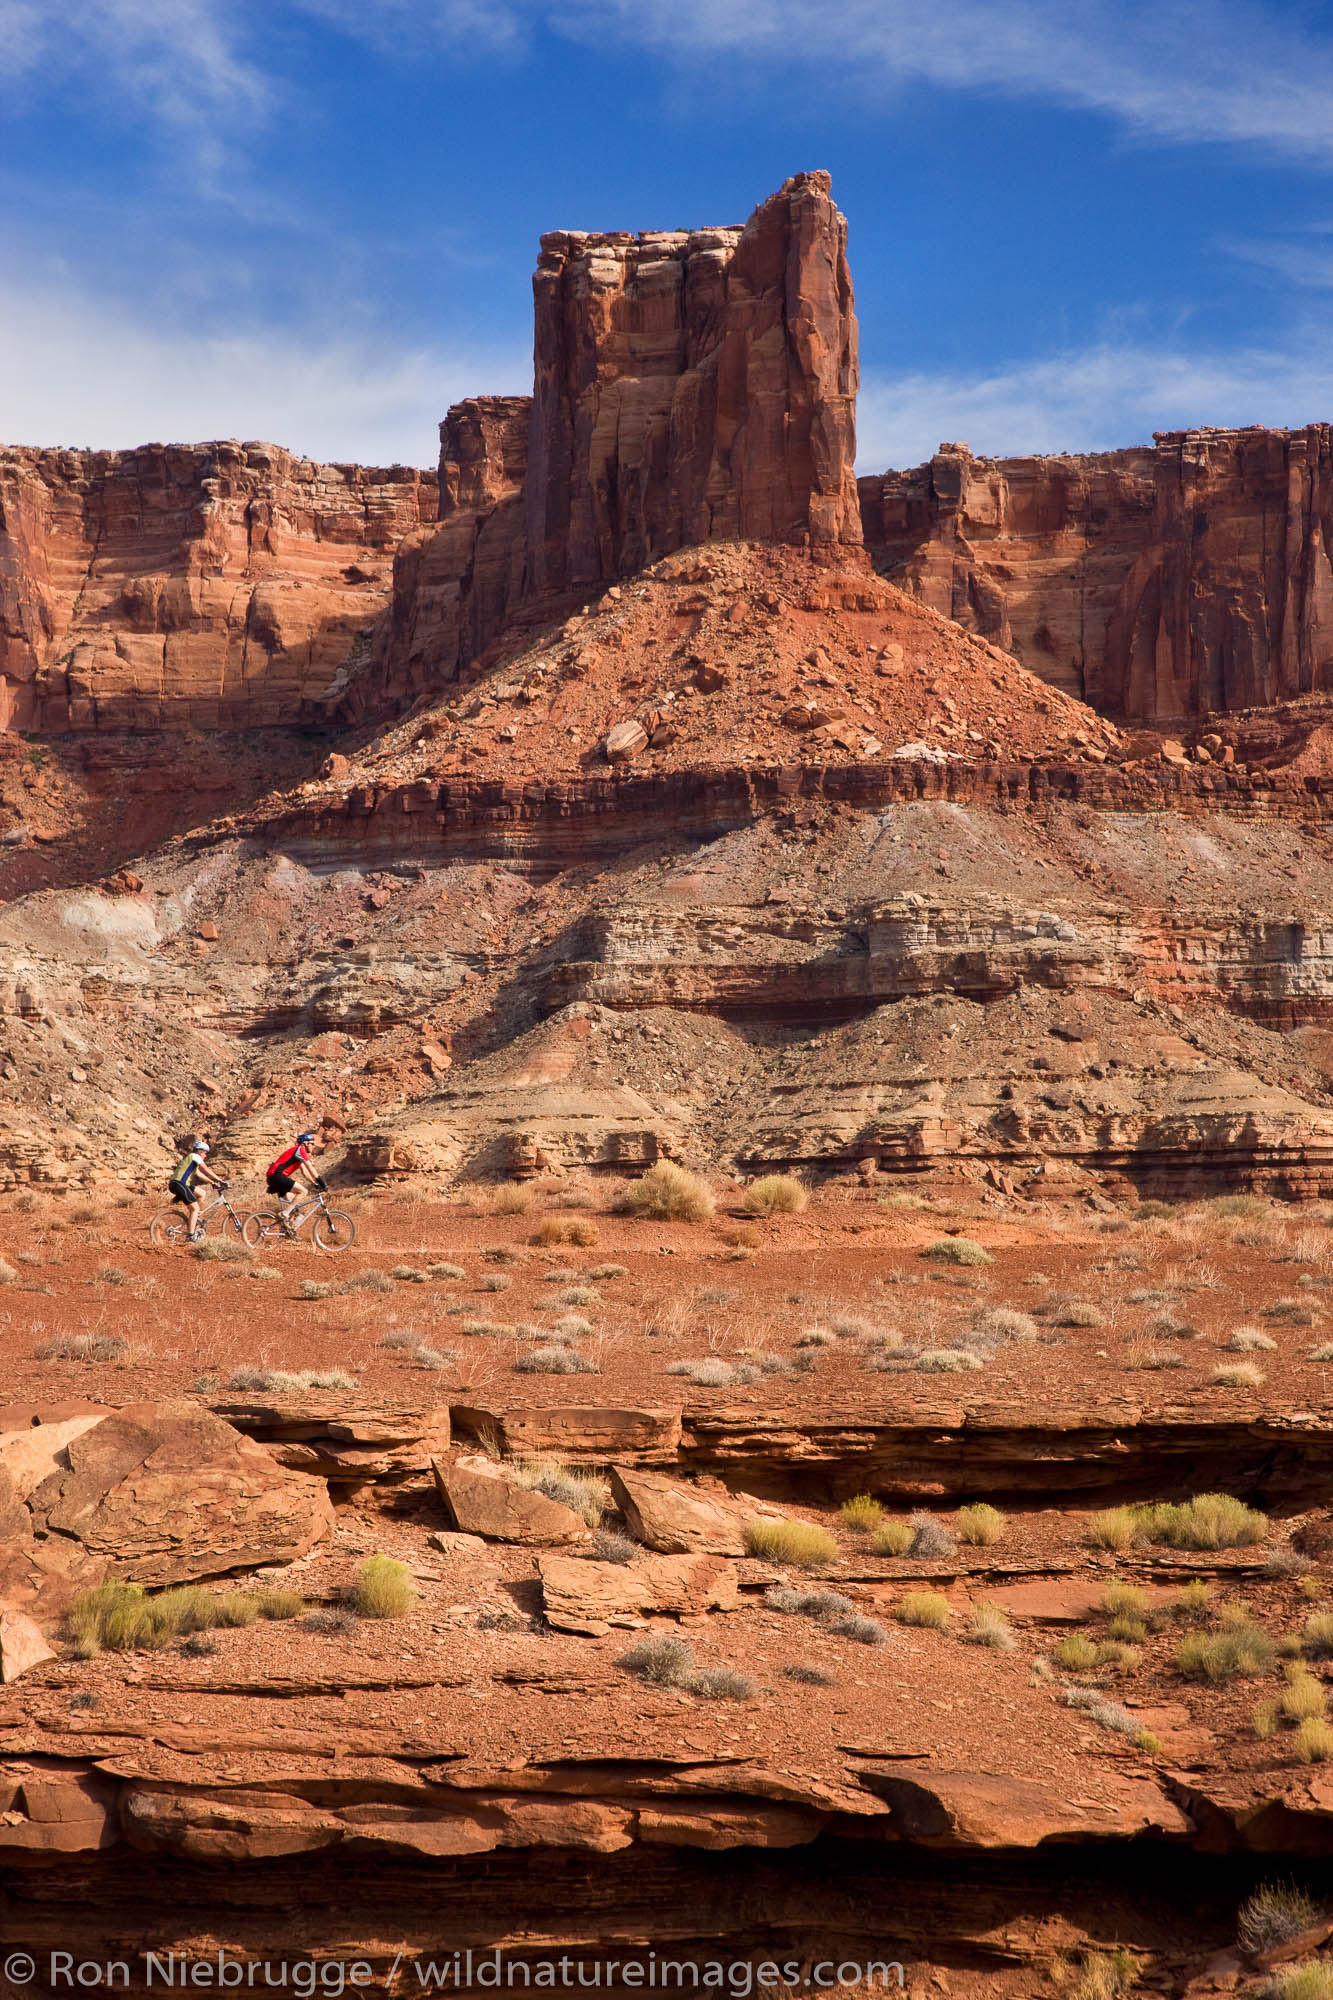 Mountain bikers pass the Labyrinth area along the White Rim Trail, Island in the Sky District, Canyonlands National Park, near...